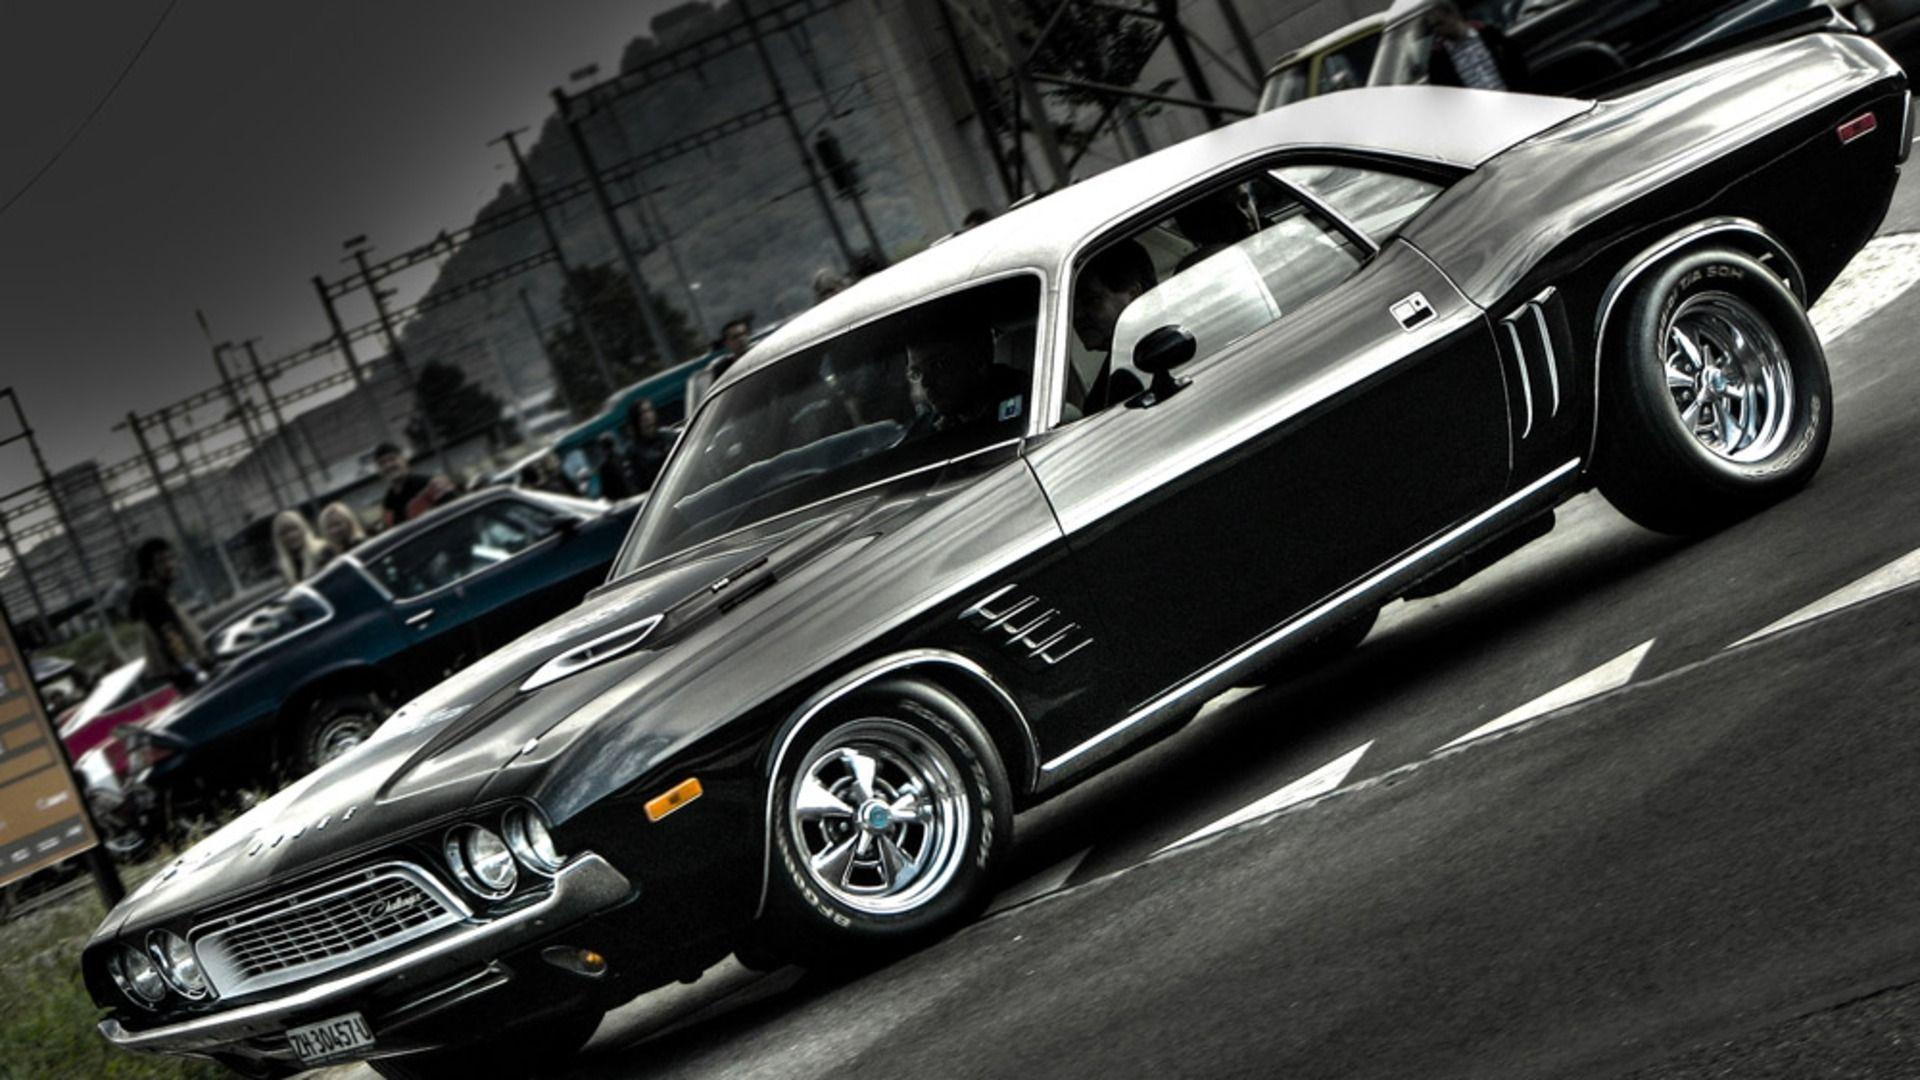 Classic muscle car wallpapers wallpaper cave for Best american classic cars